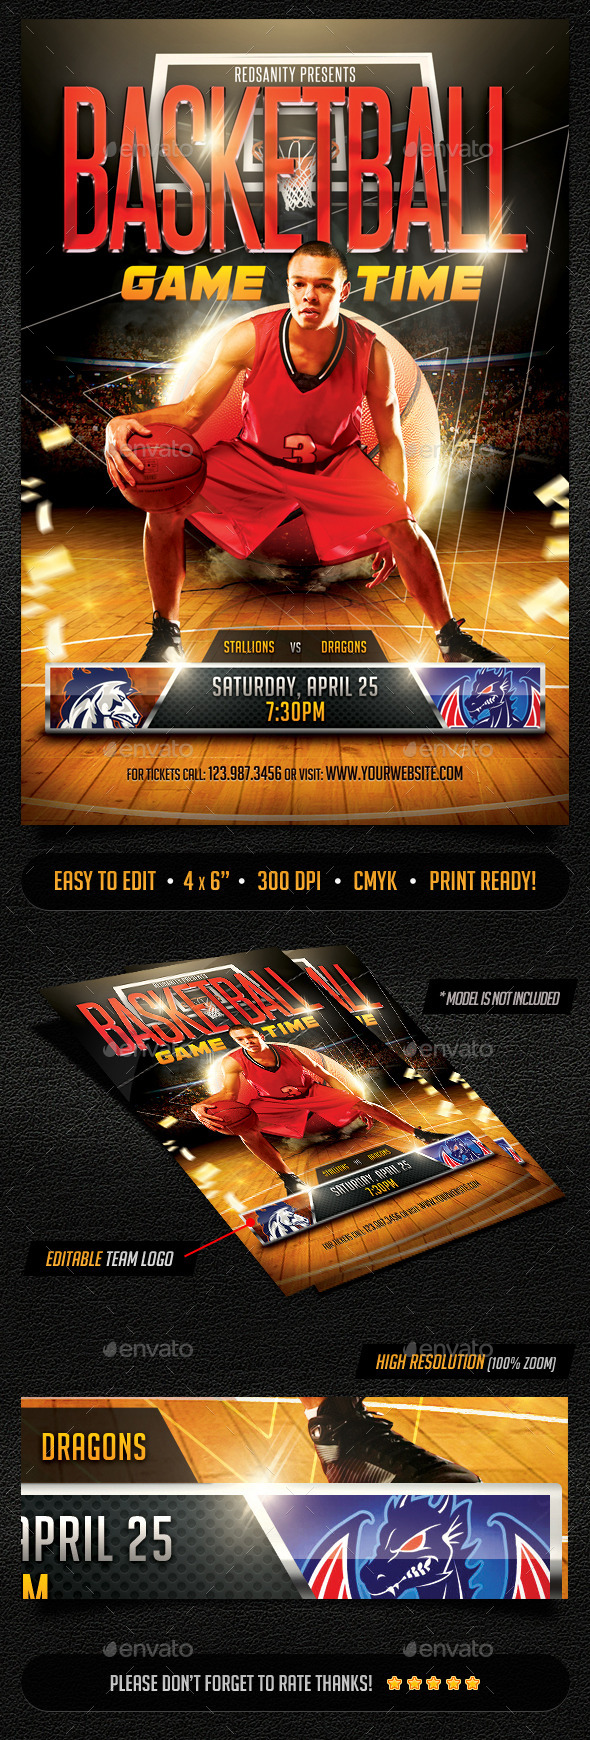 GraphicRiver Basketball Game Time Flyer 10945673